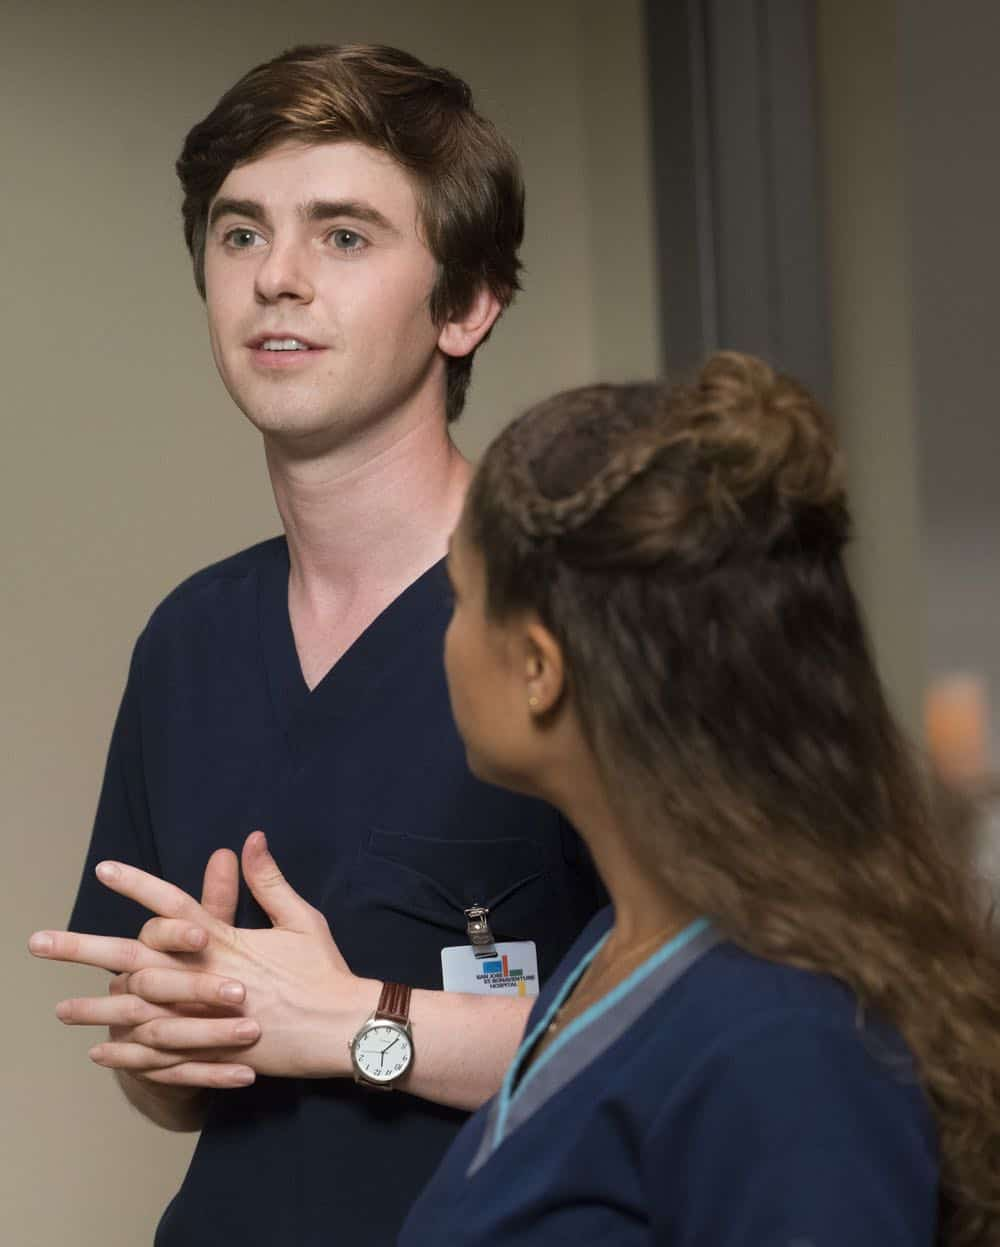 THE GOOD DOCTOR Season 2 Episode 2 Middle Ground 19